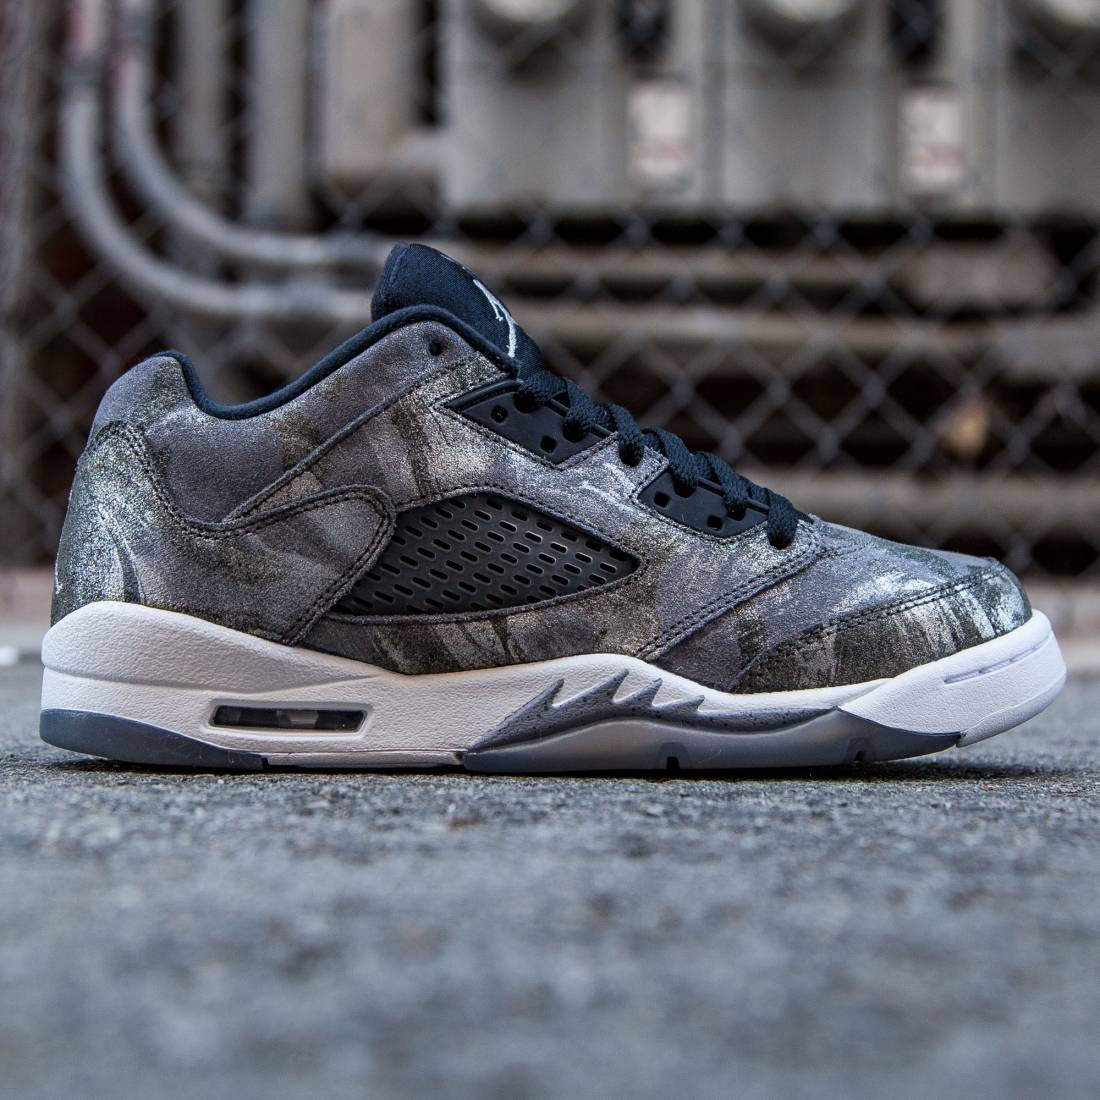 check out 7a130 467f5 Jordan Big Kids Air Jordan 5 Retro Prem Low GG (gray   cool grey   wolf  grey   white   black)